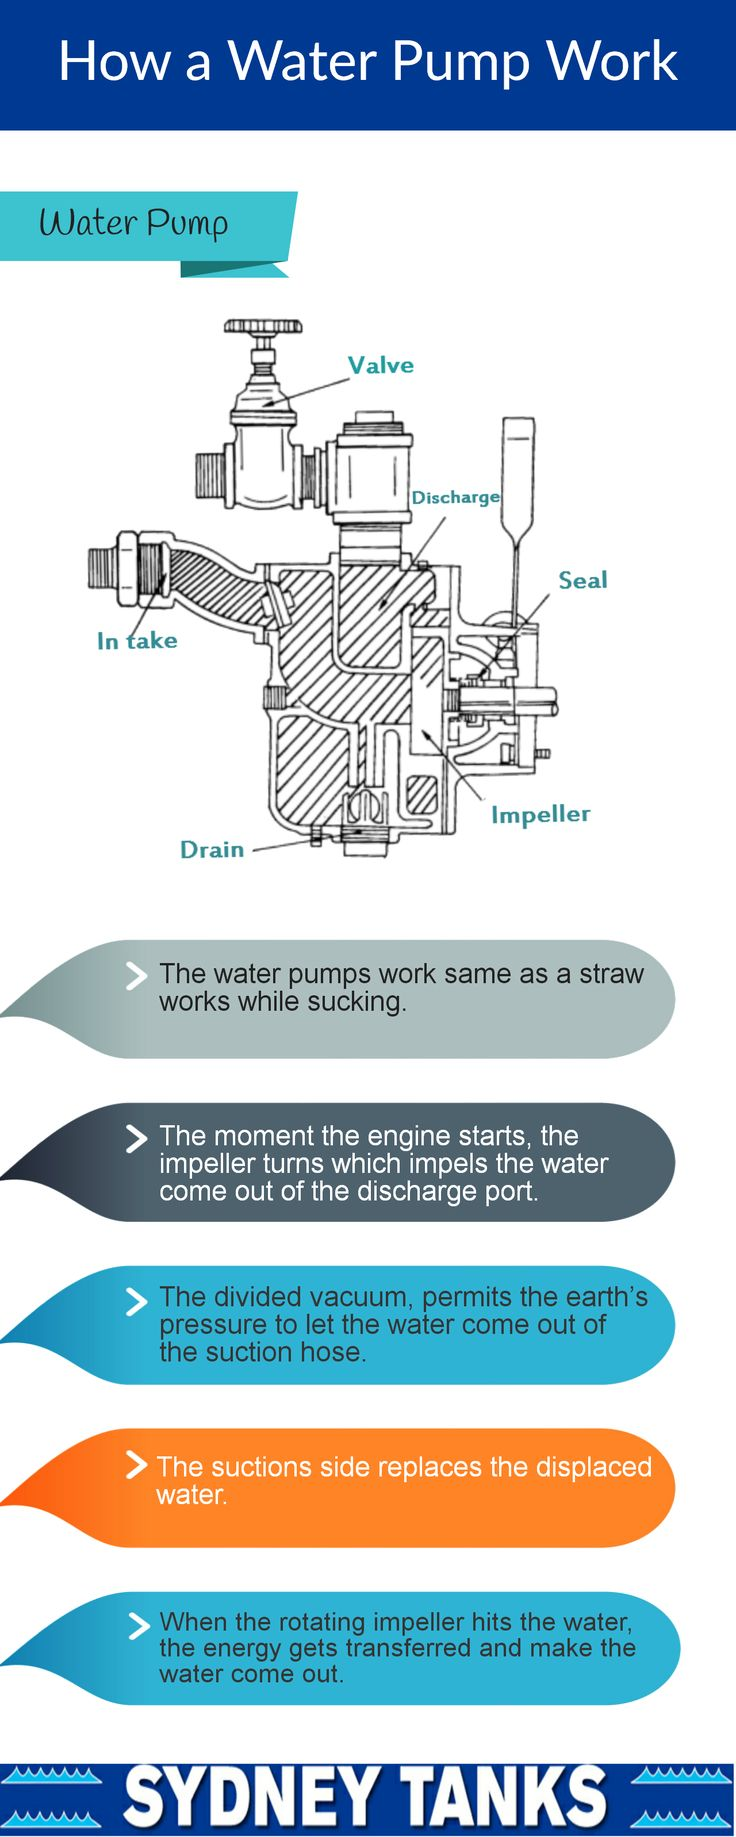 Water pump seems to be simple machinery, but its working is really impressive as well as interesting. It uses force and the suction process to bring water to the hose. Go through this infographic to understand better how it works.